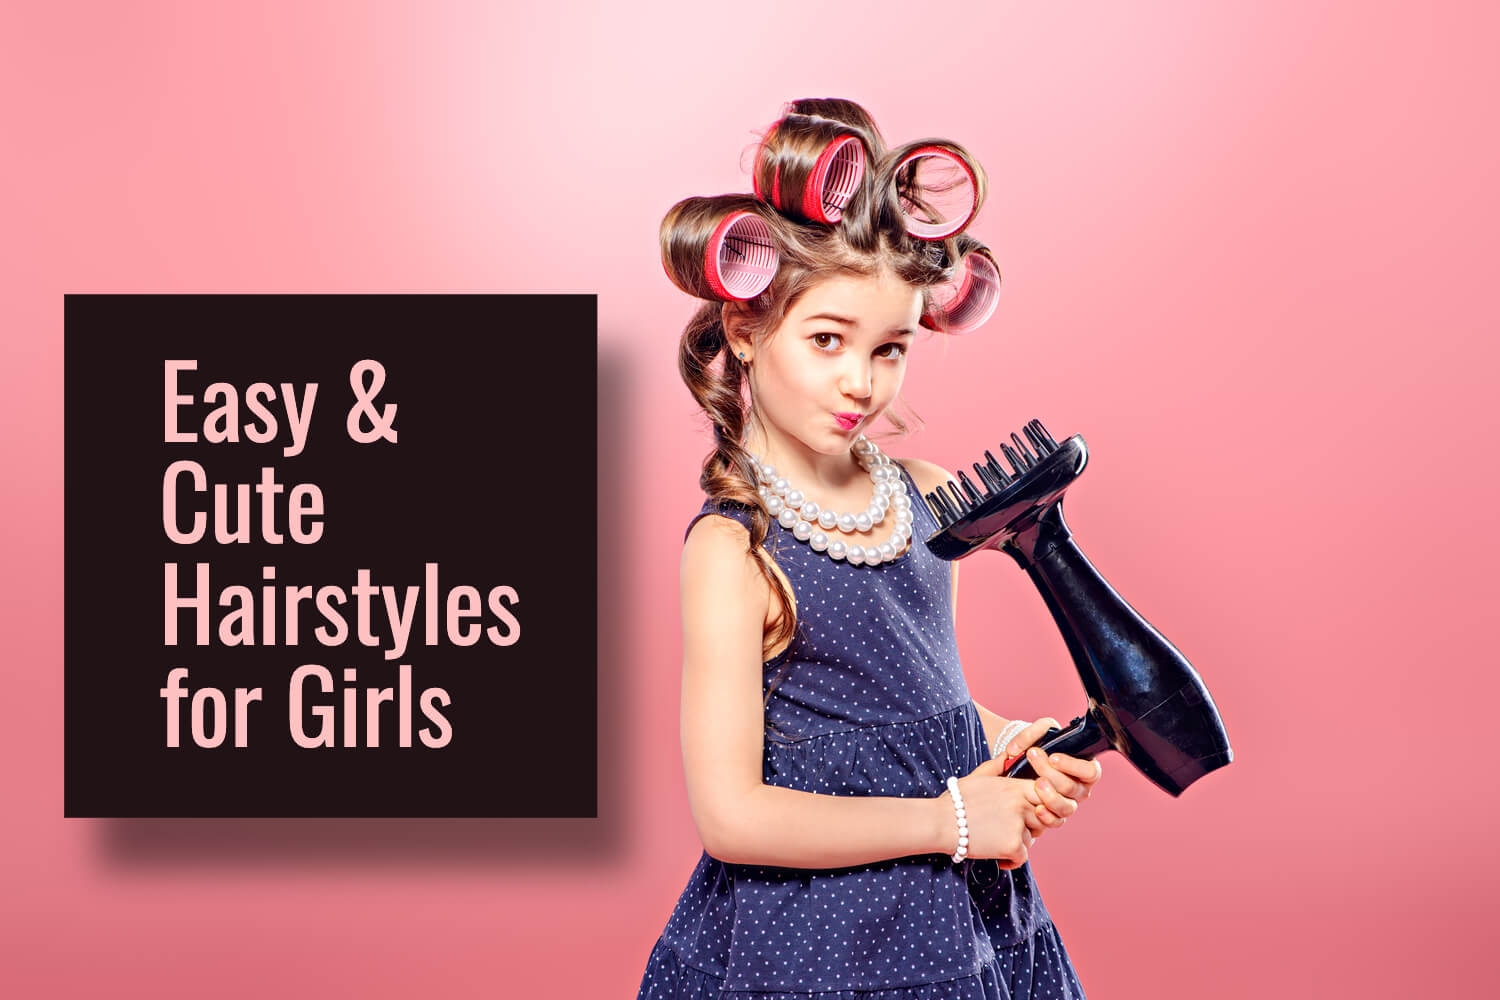 10 Easy & Cute Hairstyles for Girls